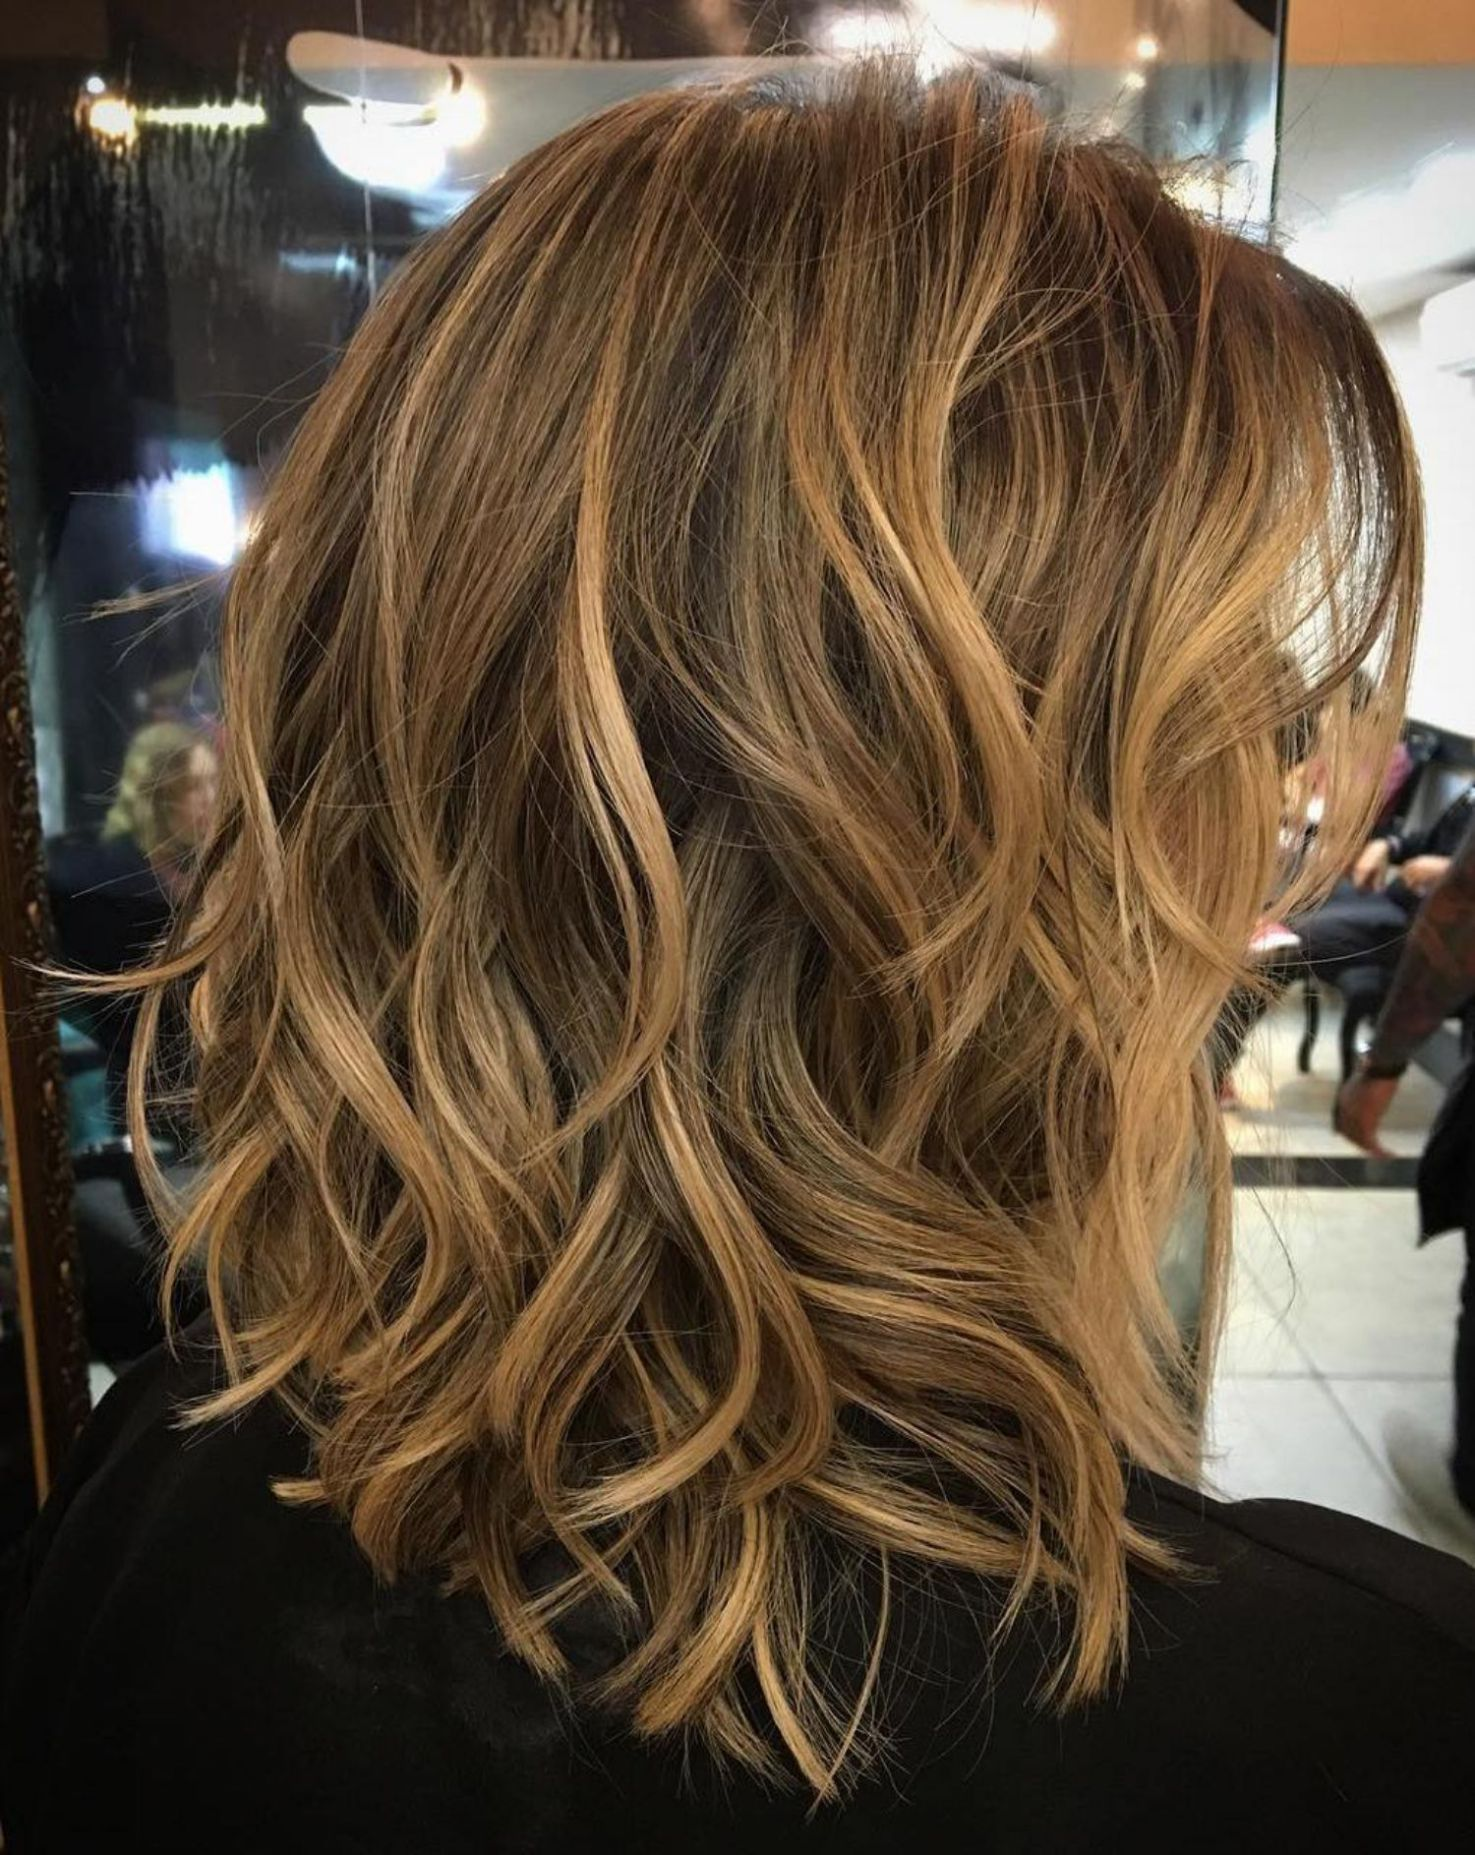 70 Best Variations of a Medium Shag Haircut for Your ...